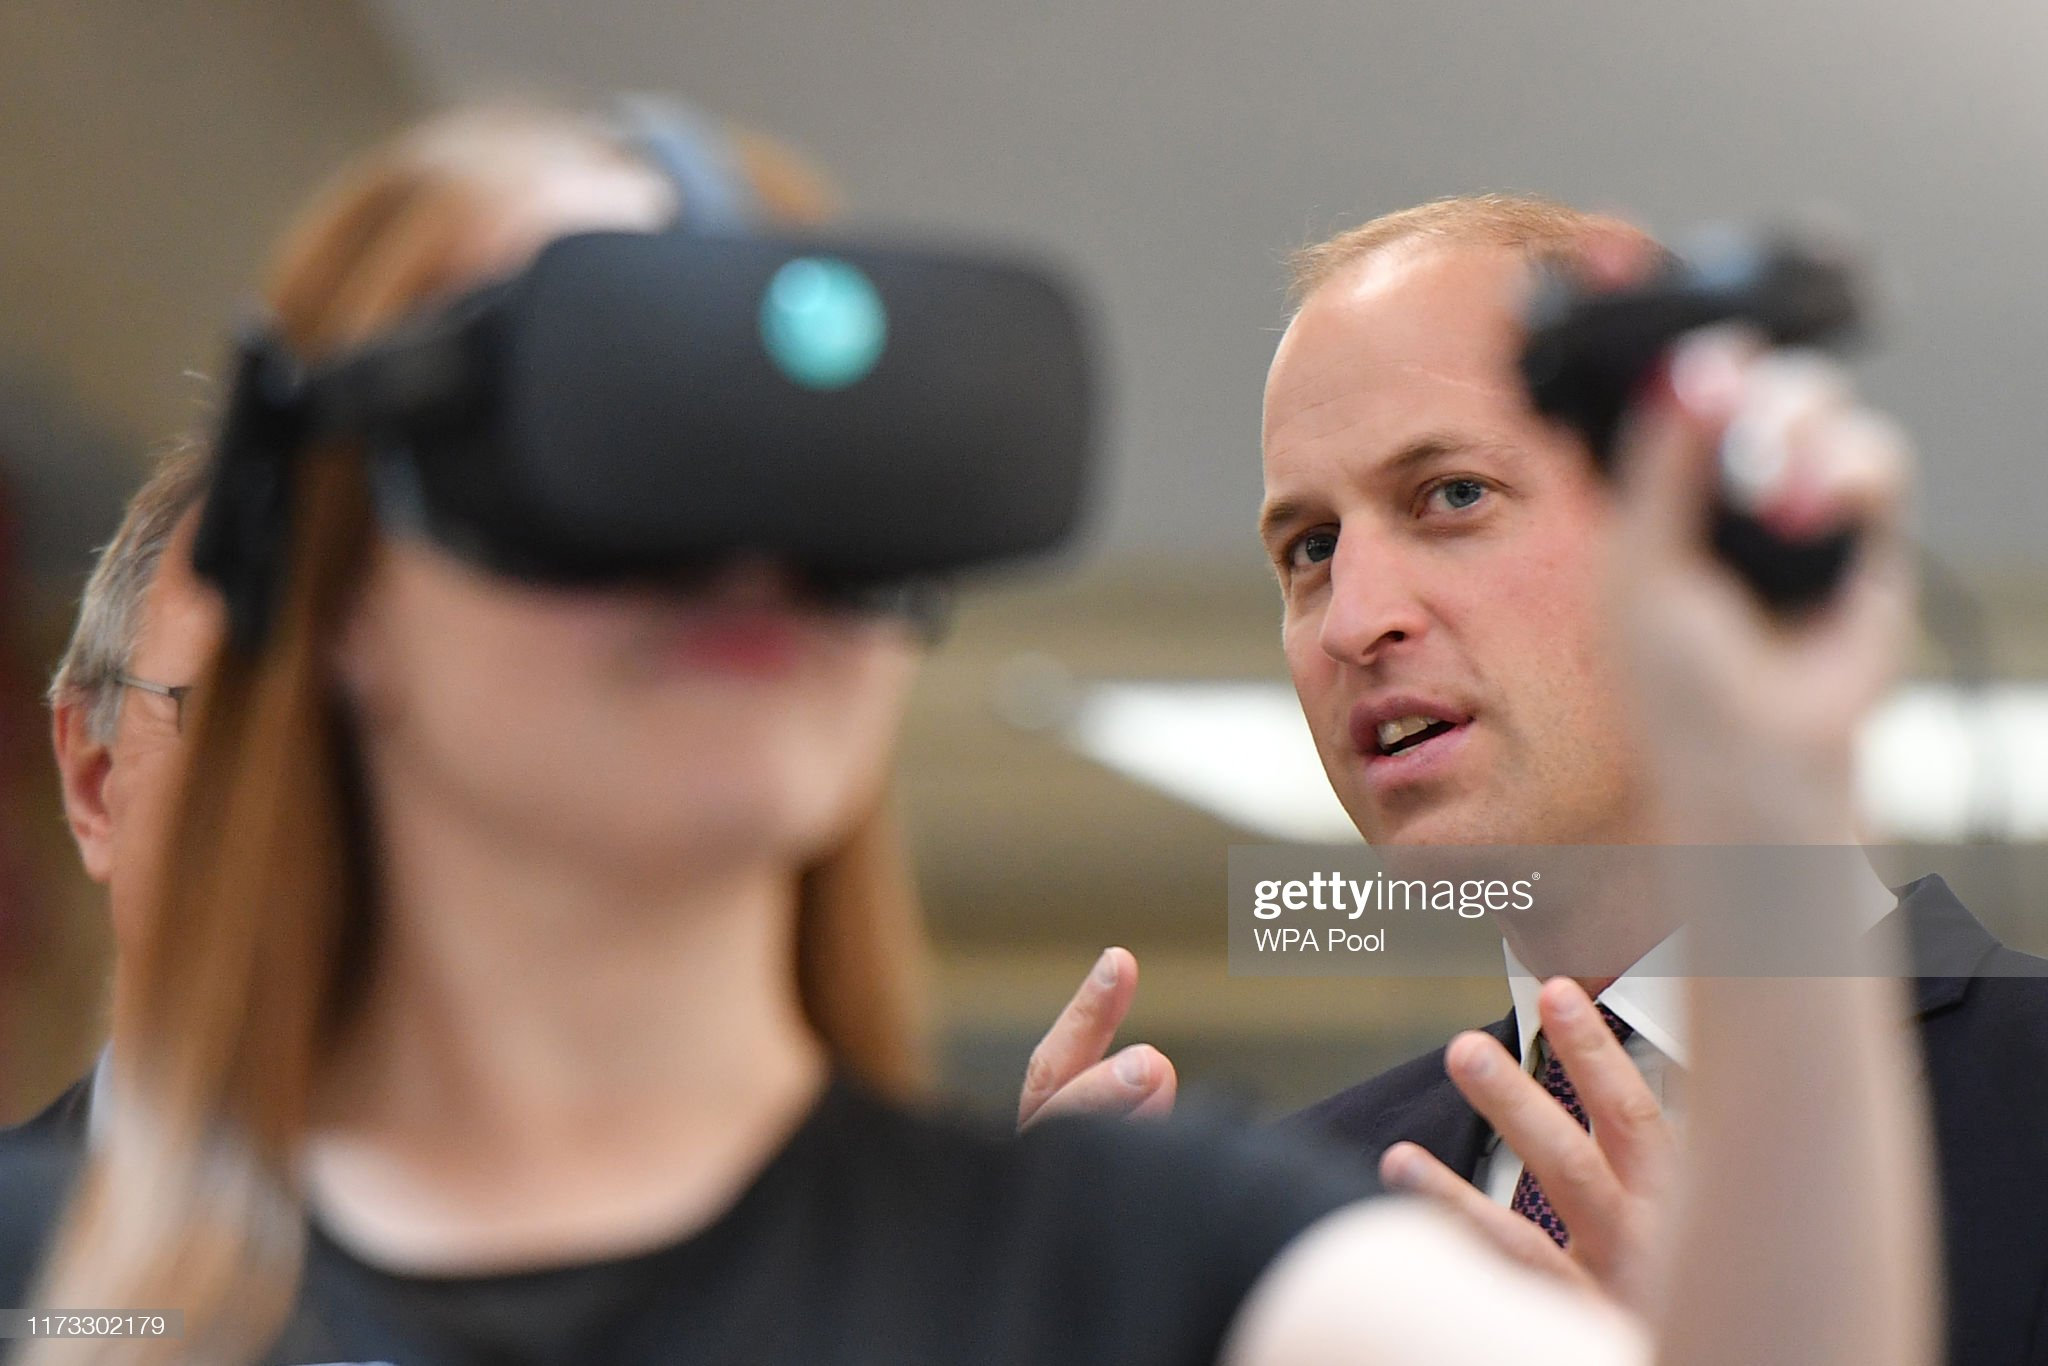 prince-william-duke-of-cambridge-watches-a-virtual-reality-for-a-picture-id1173302179